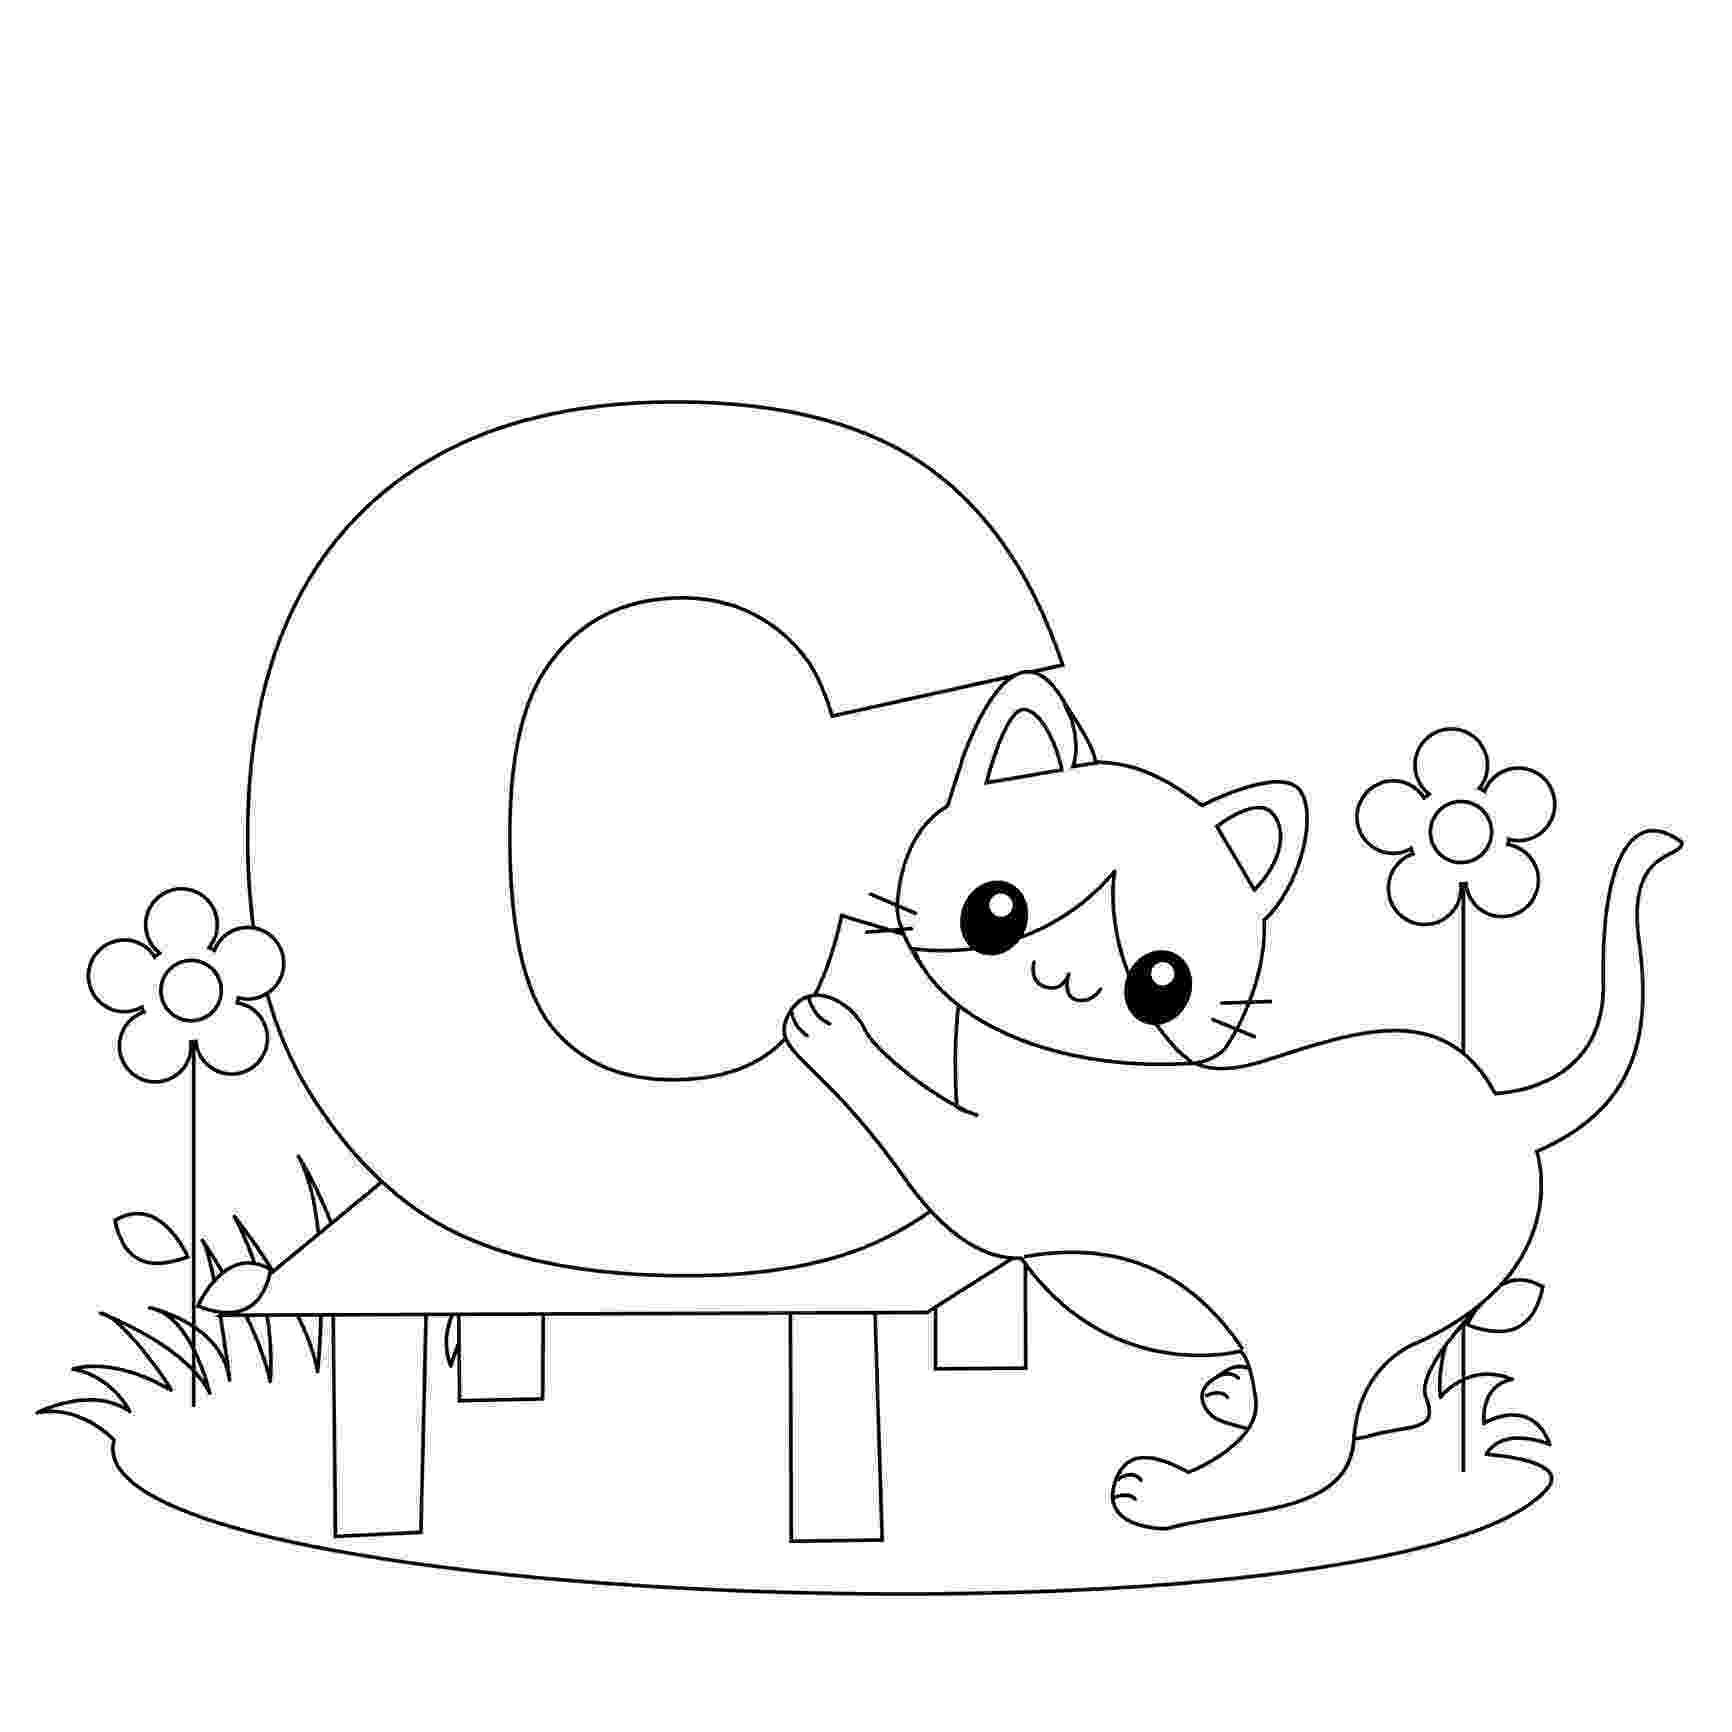 free alphabet coloring pages free printable alphabet coloring pages for kids best coloring free alphabet pages